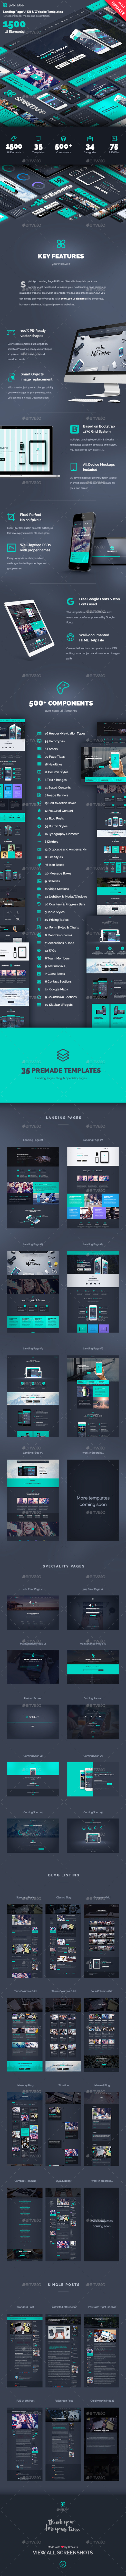 SpiritApp Landing Page UI Kit & Premade Templates (Dark Style) (User Interfaces)